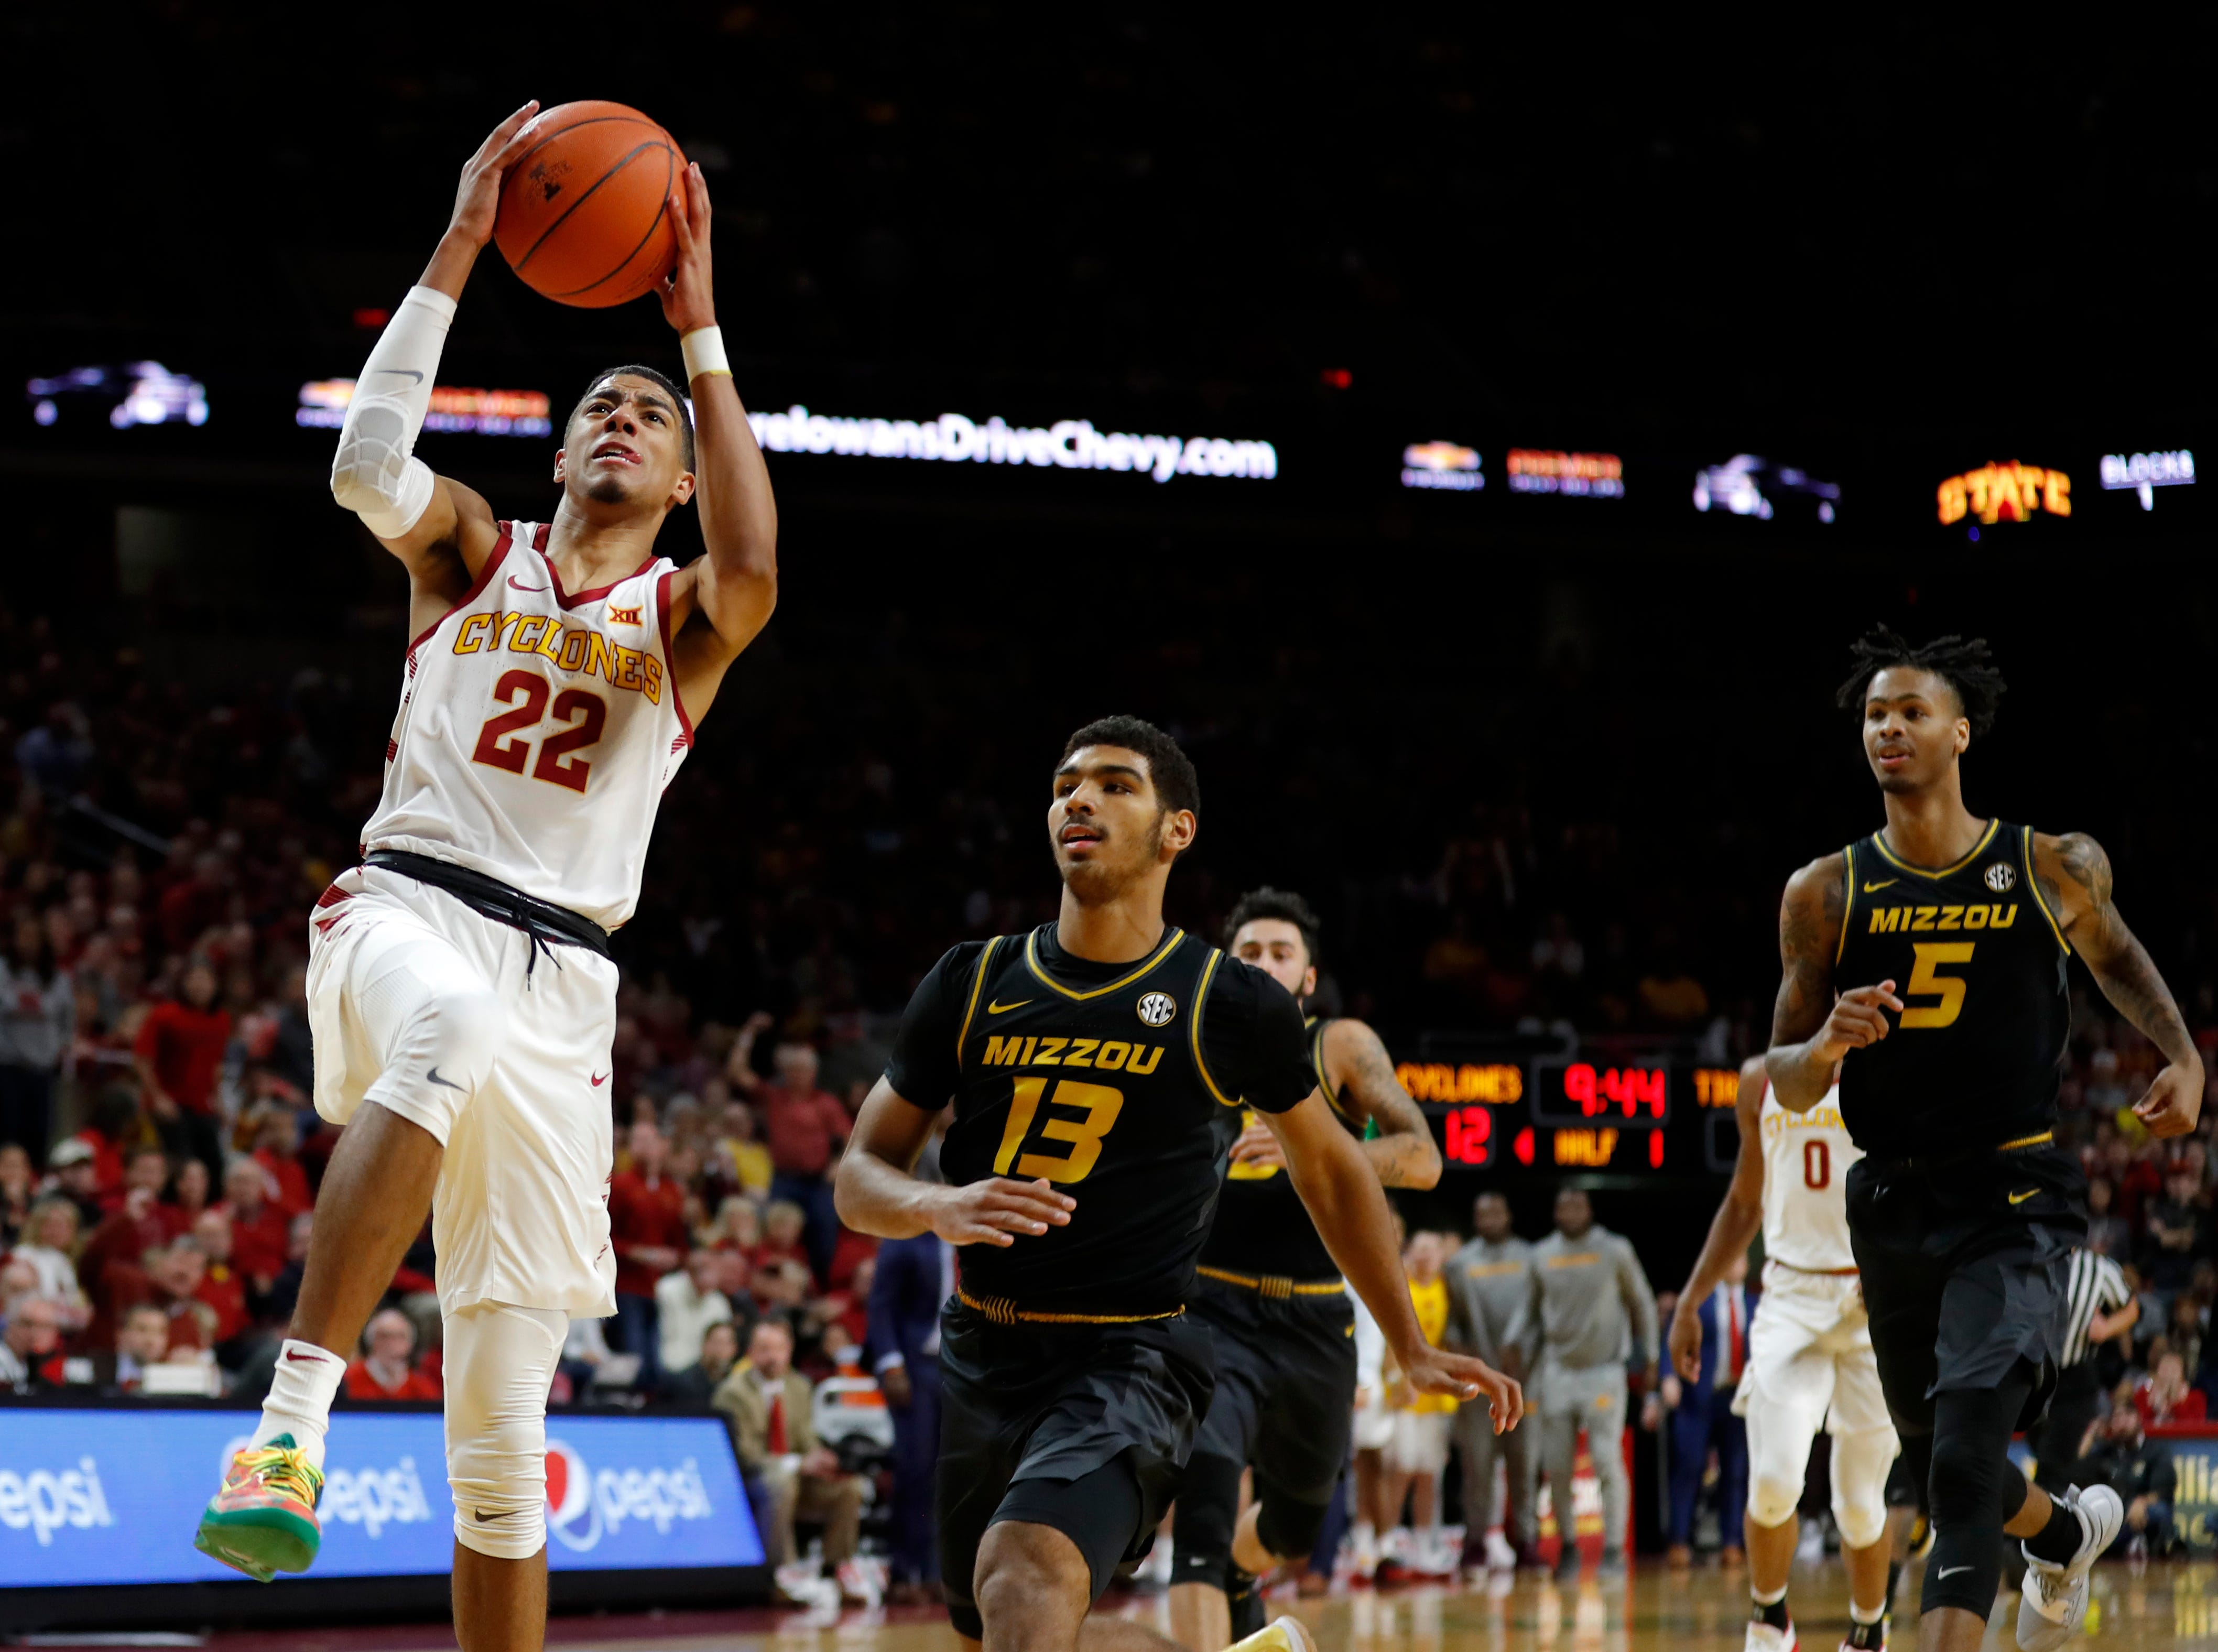 Iowa State guard Tyrese Haliburton (22) drives to the basket ahead of Missouri's Mark Smith (13) and Mitchell Smith (5) during the first half of an NCAA college basketball game, Friday, Nov. 9, 2018, in Ames, Iowa.